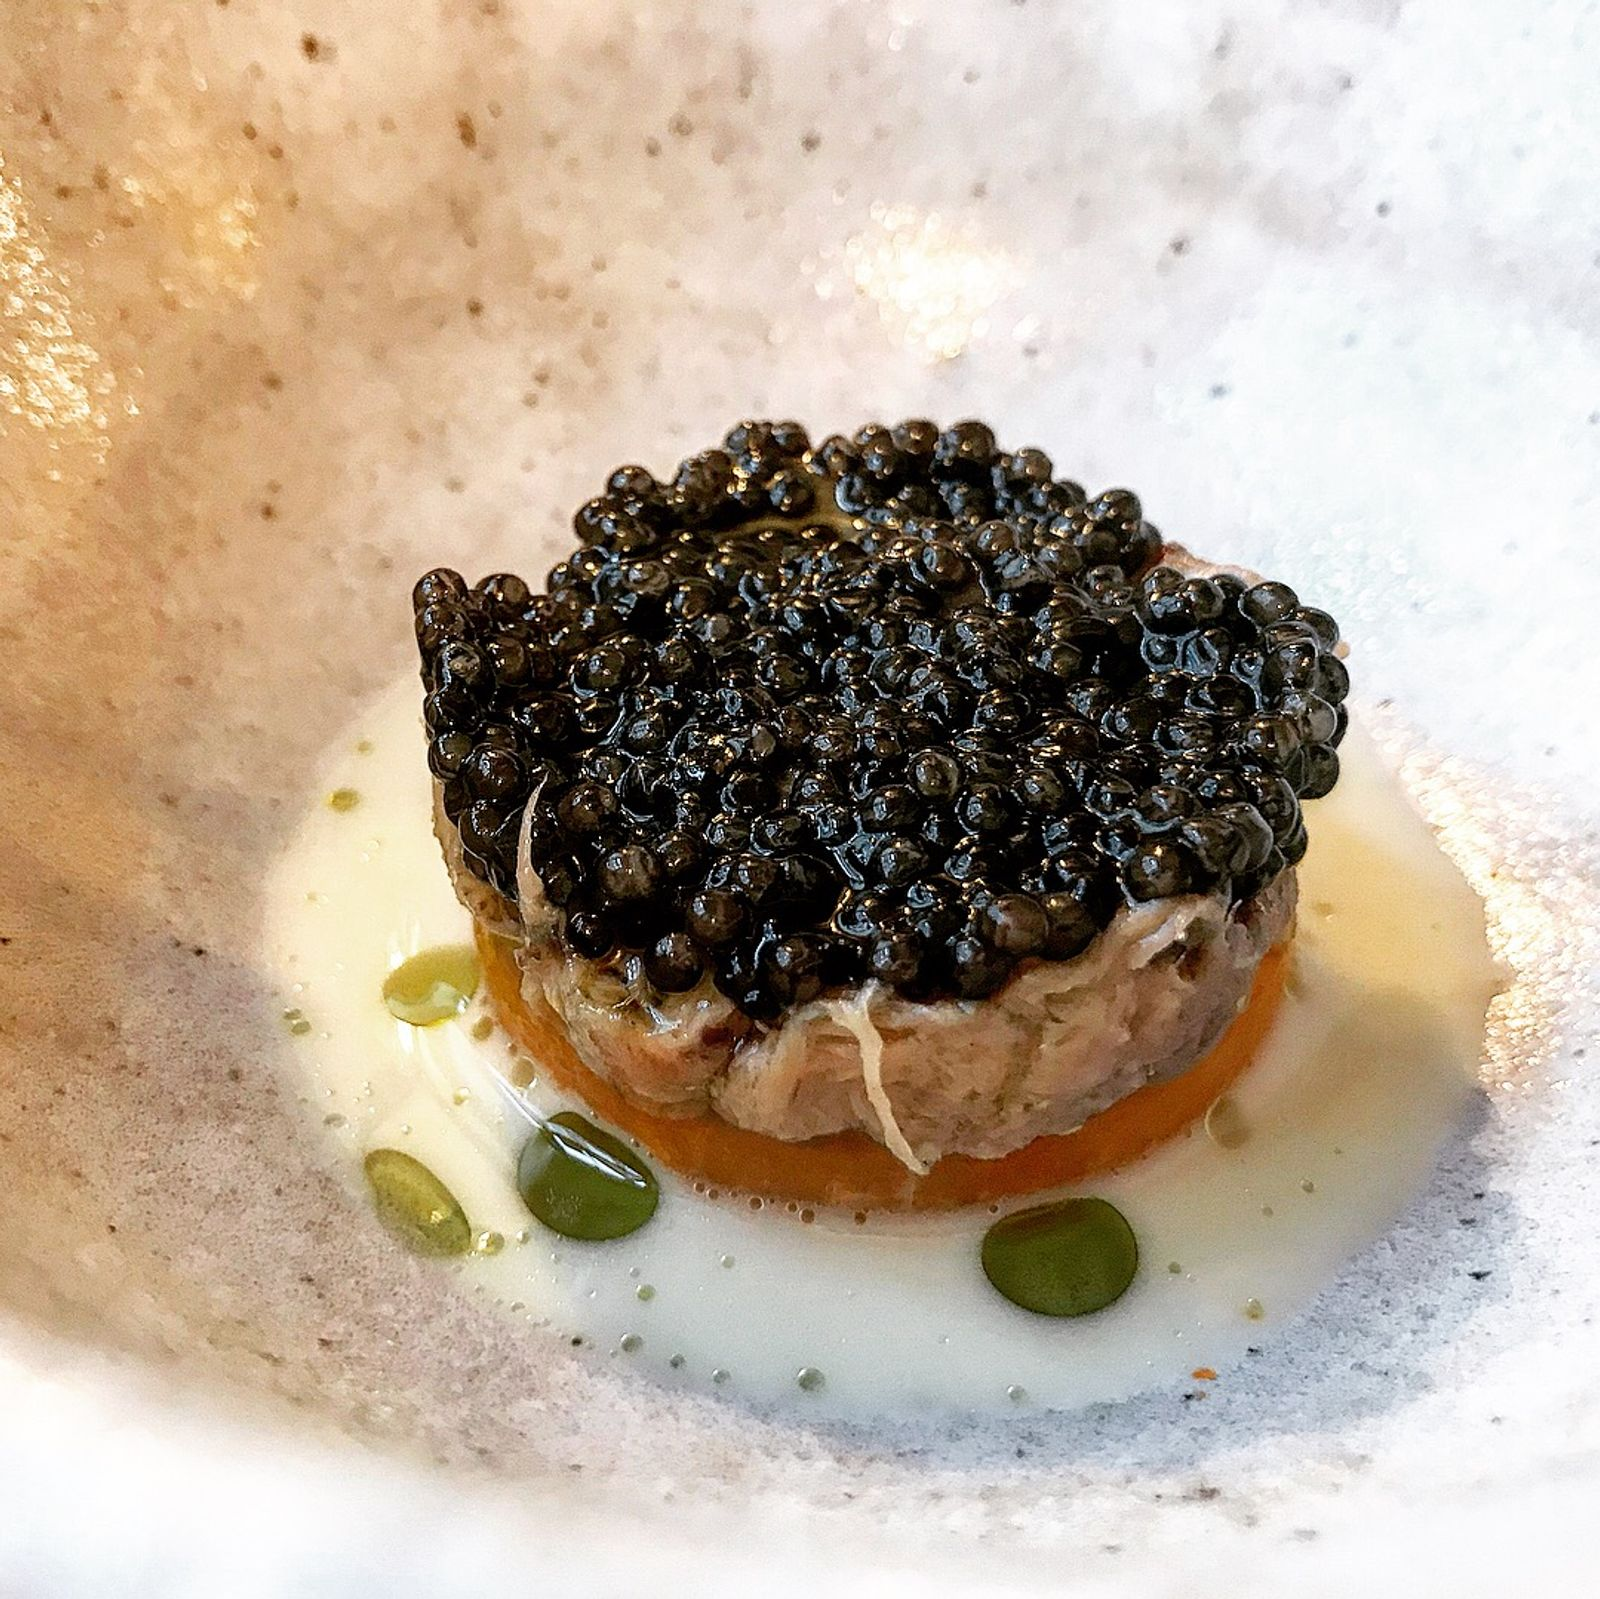 Pigs head with caviar - The Granary Newtown